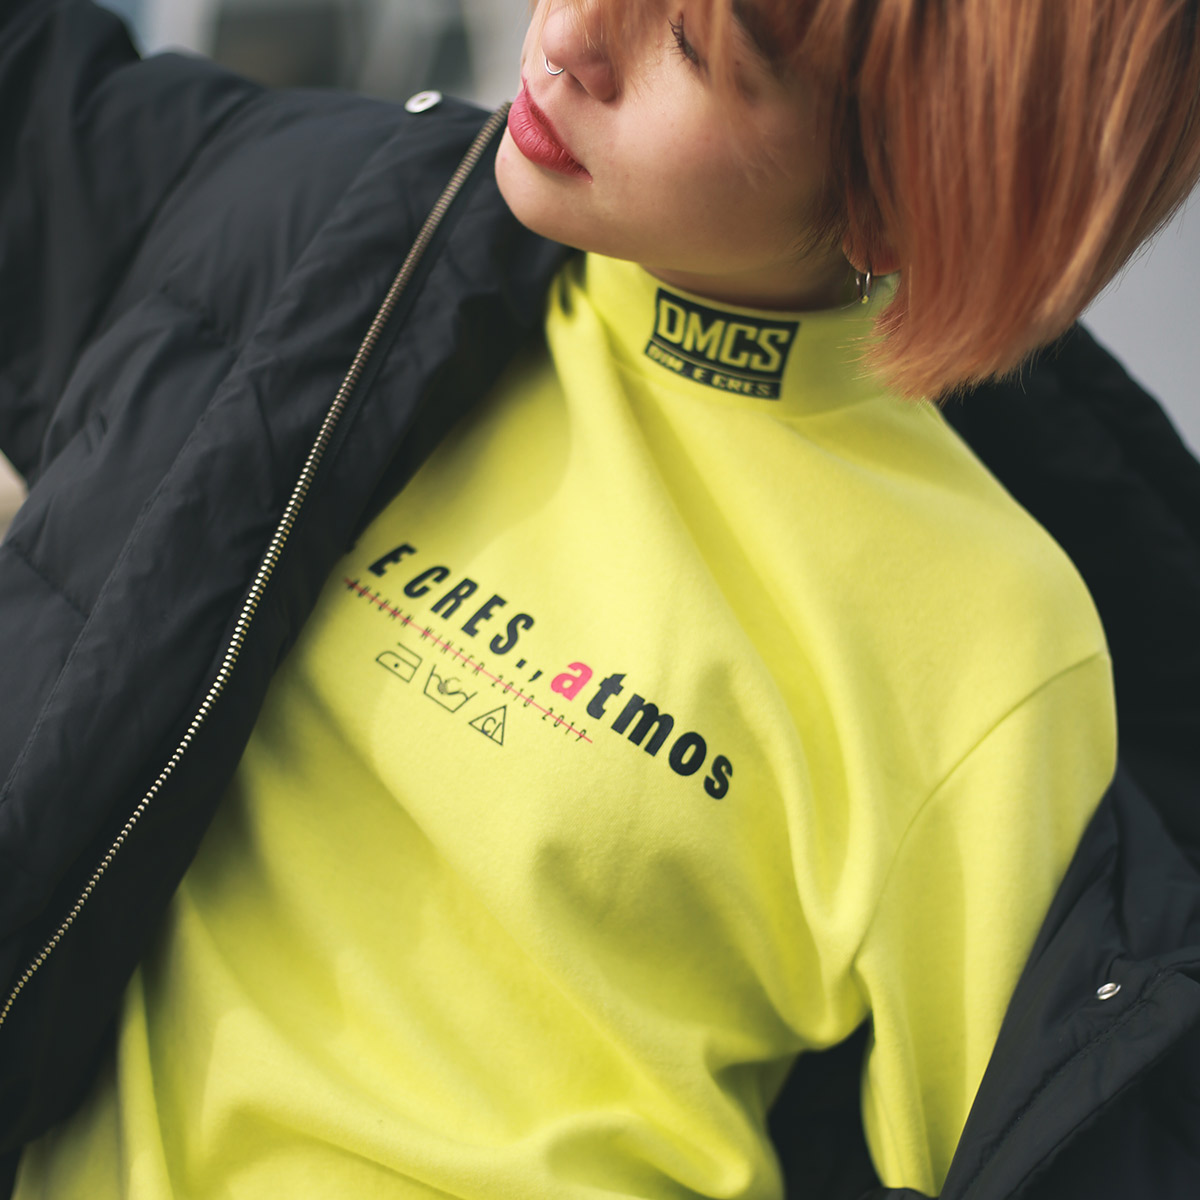 atmos pink × DIM.E CRES. BASIC LONG SLEEVE (アトモスピンク × ディムエクレス ベーシック ロングスリーブ)YELLOW【レディース 長袖Tシャツ】18HO-I